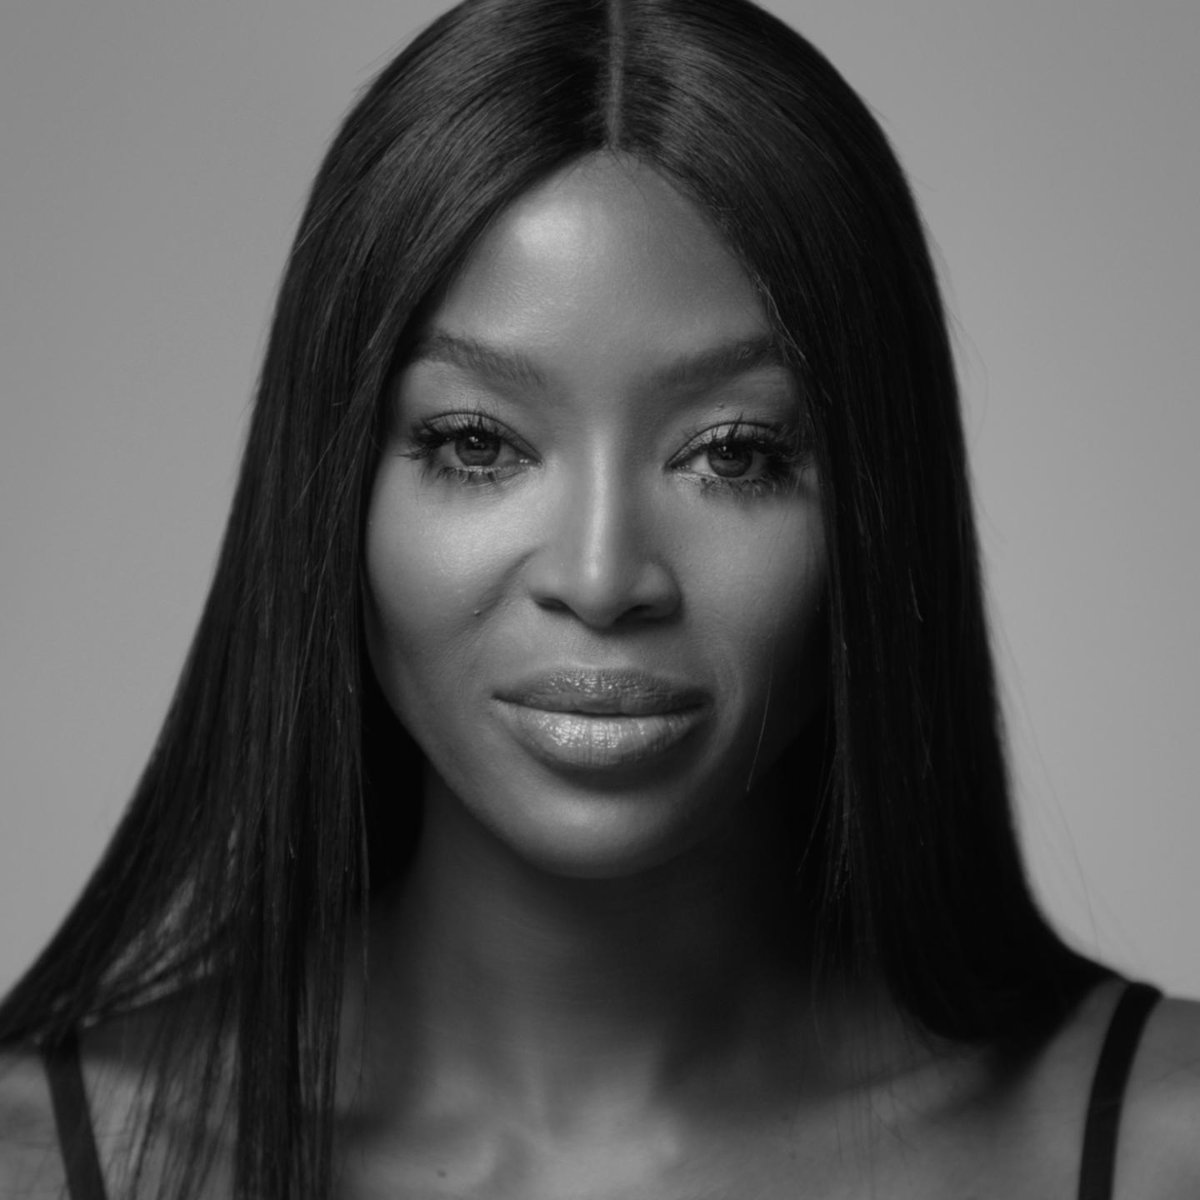 """""""I don't have time to waste."""" Naomi Campbell wears the white ceramic version of the new J12 watch and tells us about how she views time and the seconds that changed her life. Discover on http://chanel.com/-j12NaomiCampbell… #TheNewJ12 #CHANELWatches #ItsAllAboutSeconds"""